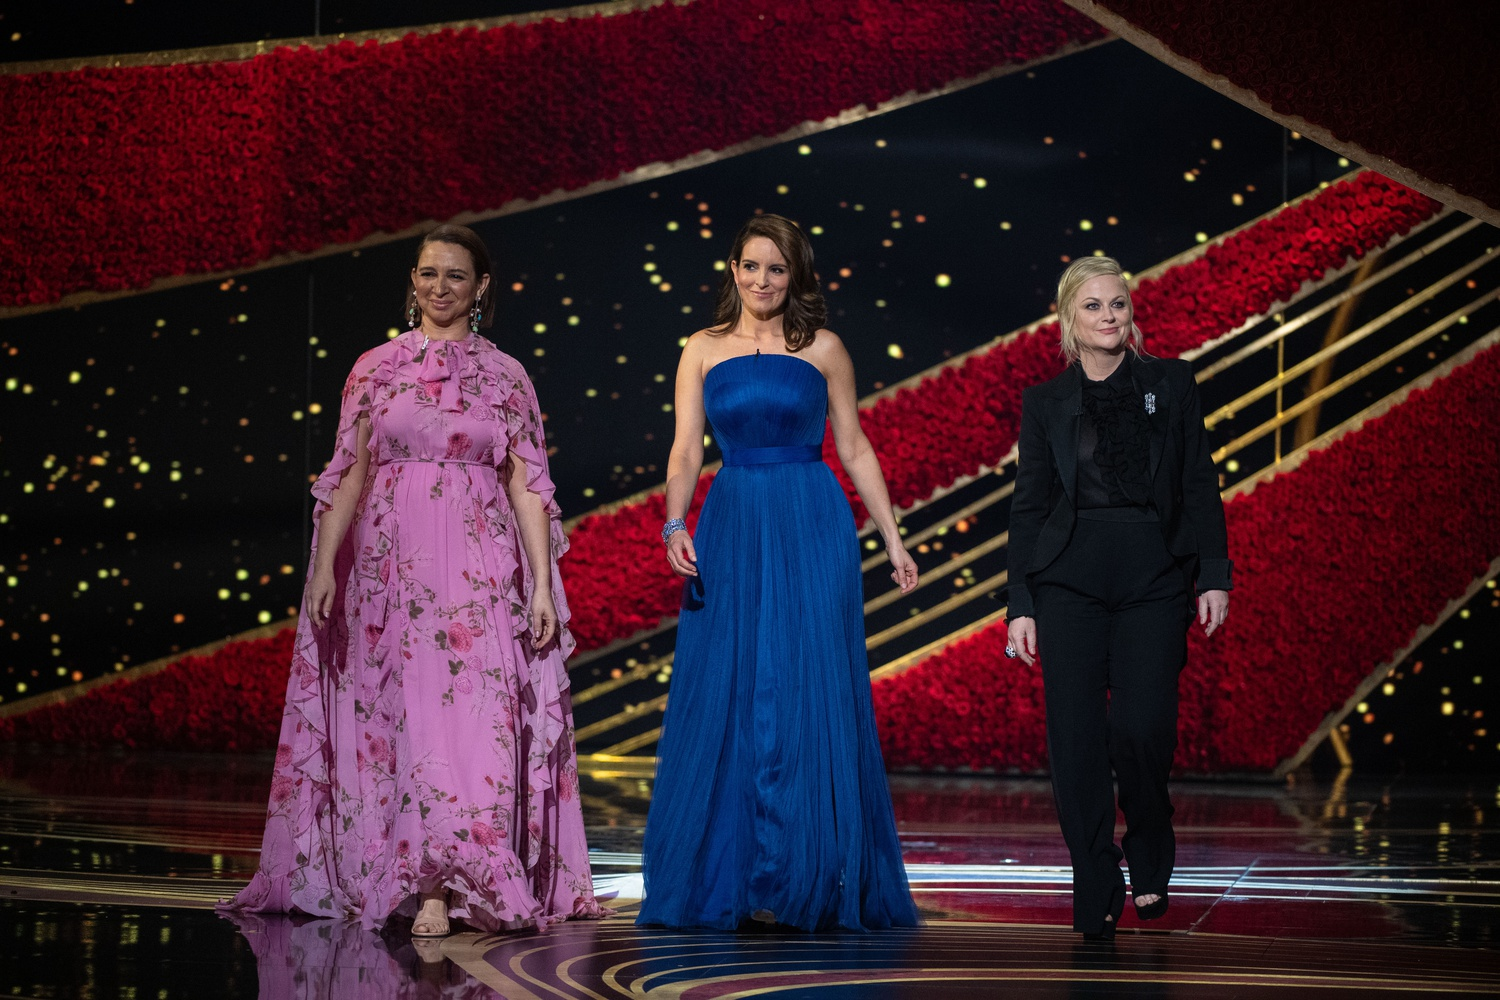 Maya Rudolph, Tina Fey, and Amy Poehler at the Oscars